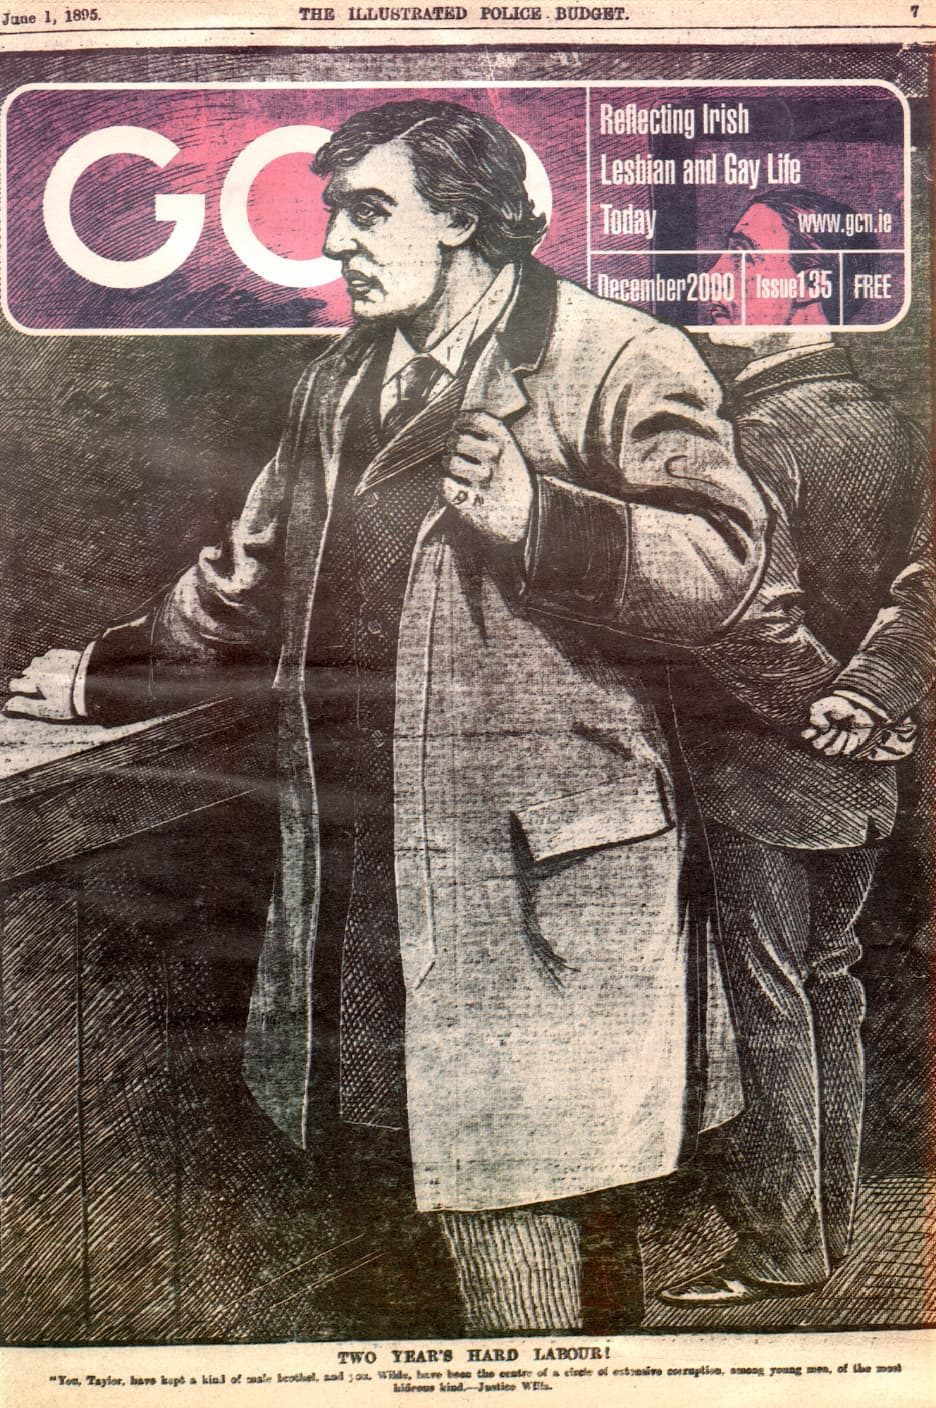 Taking a look at the production process of GCN: Cover of GCN issue 135 featuring illustration of Oscar Wilde.